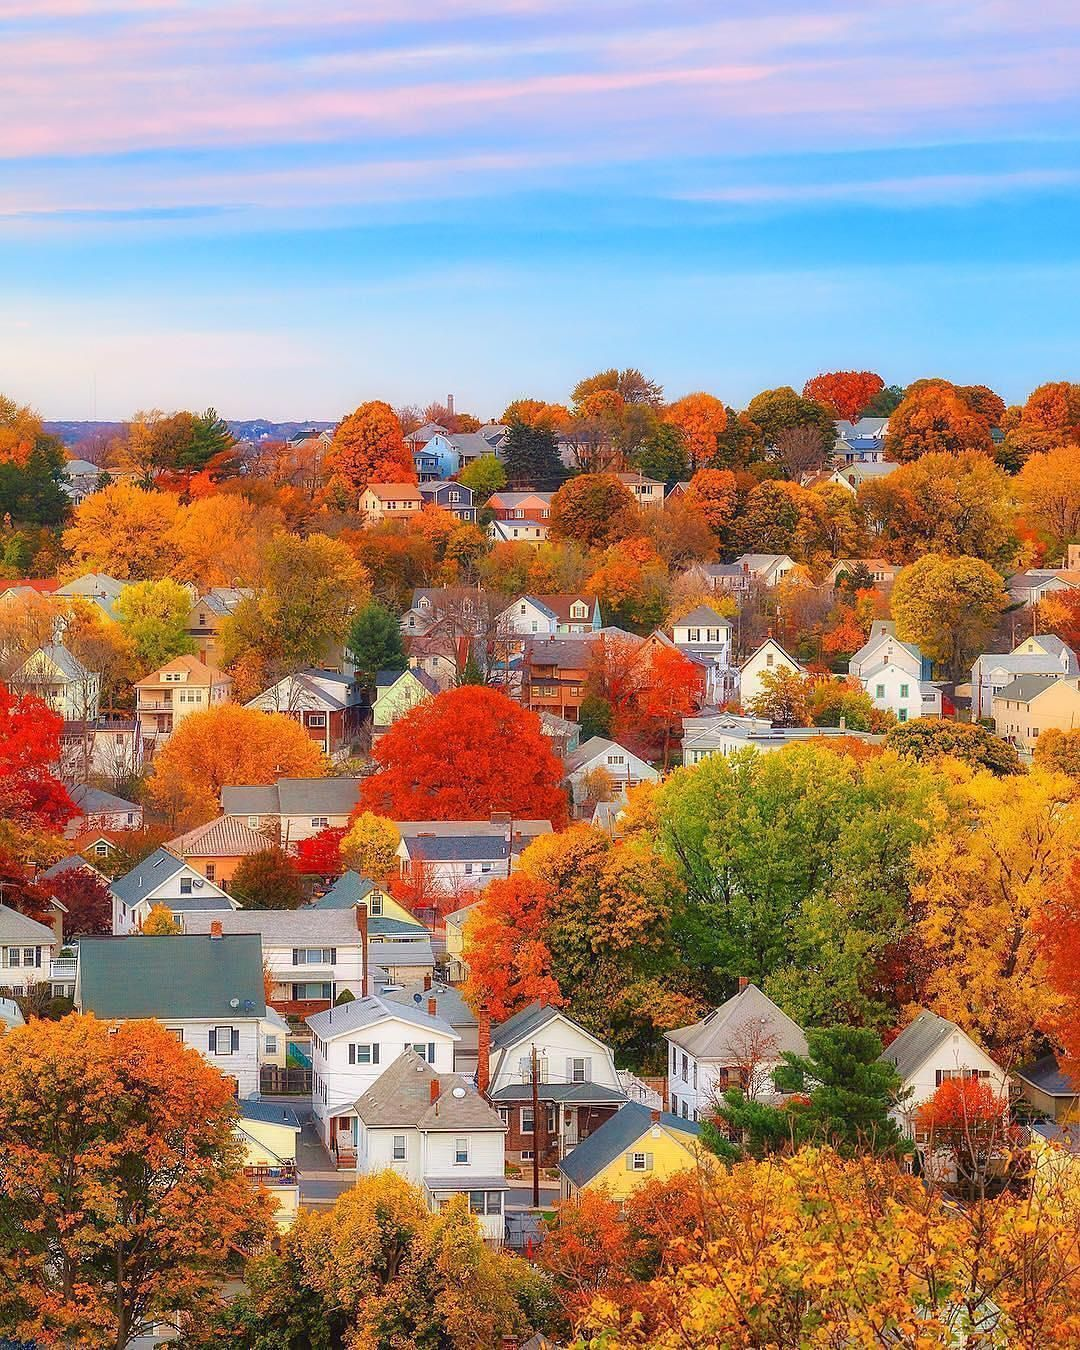 Massachusetts, USA ???????? Photo credit #autumnscenery